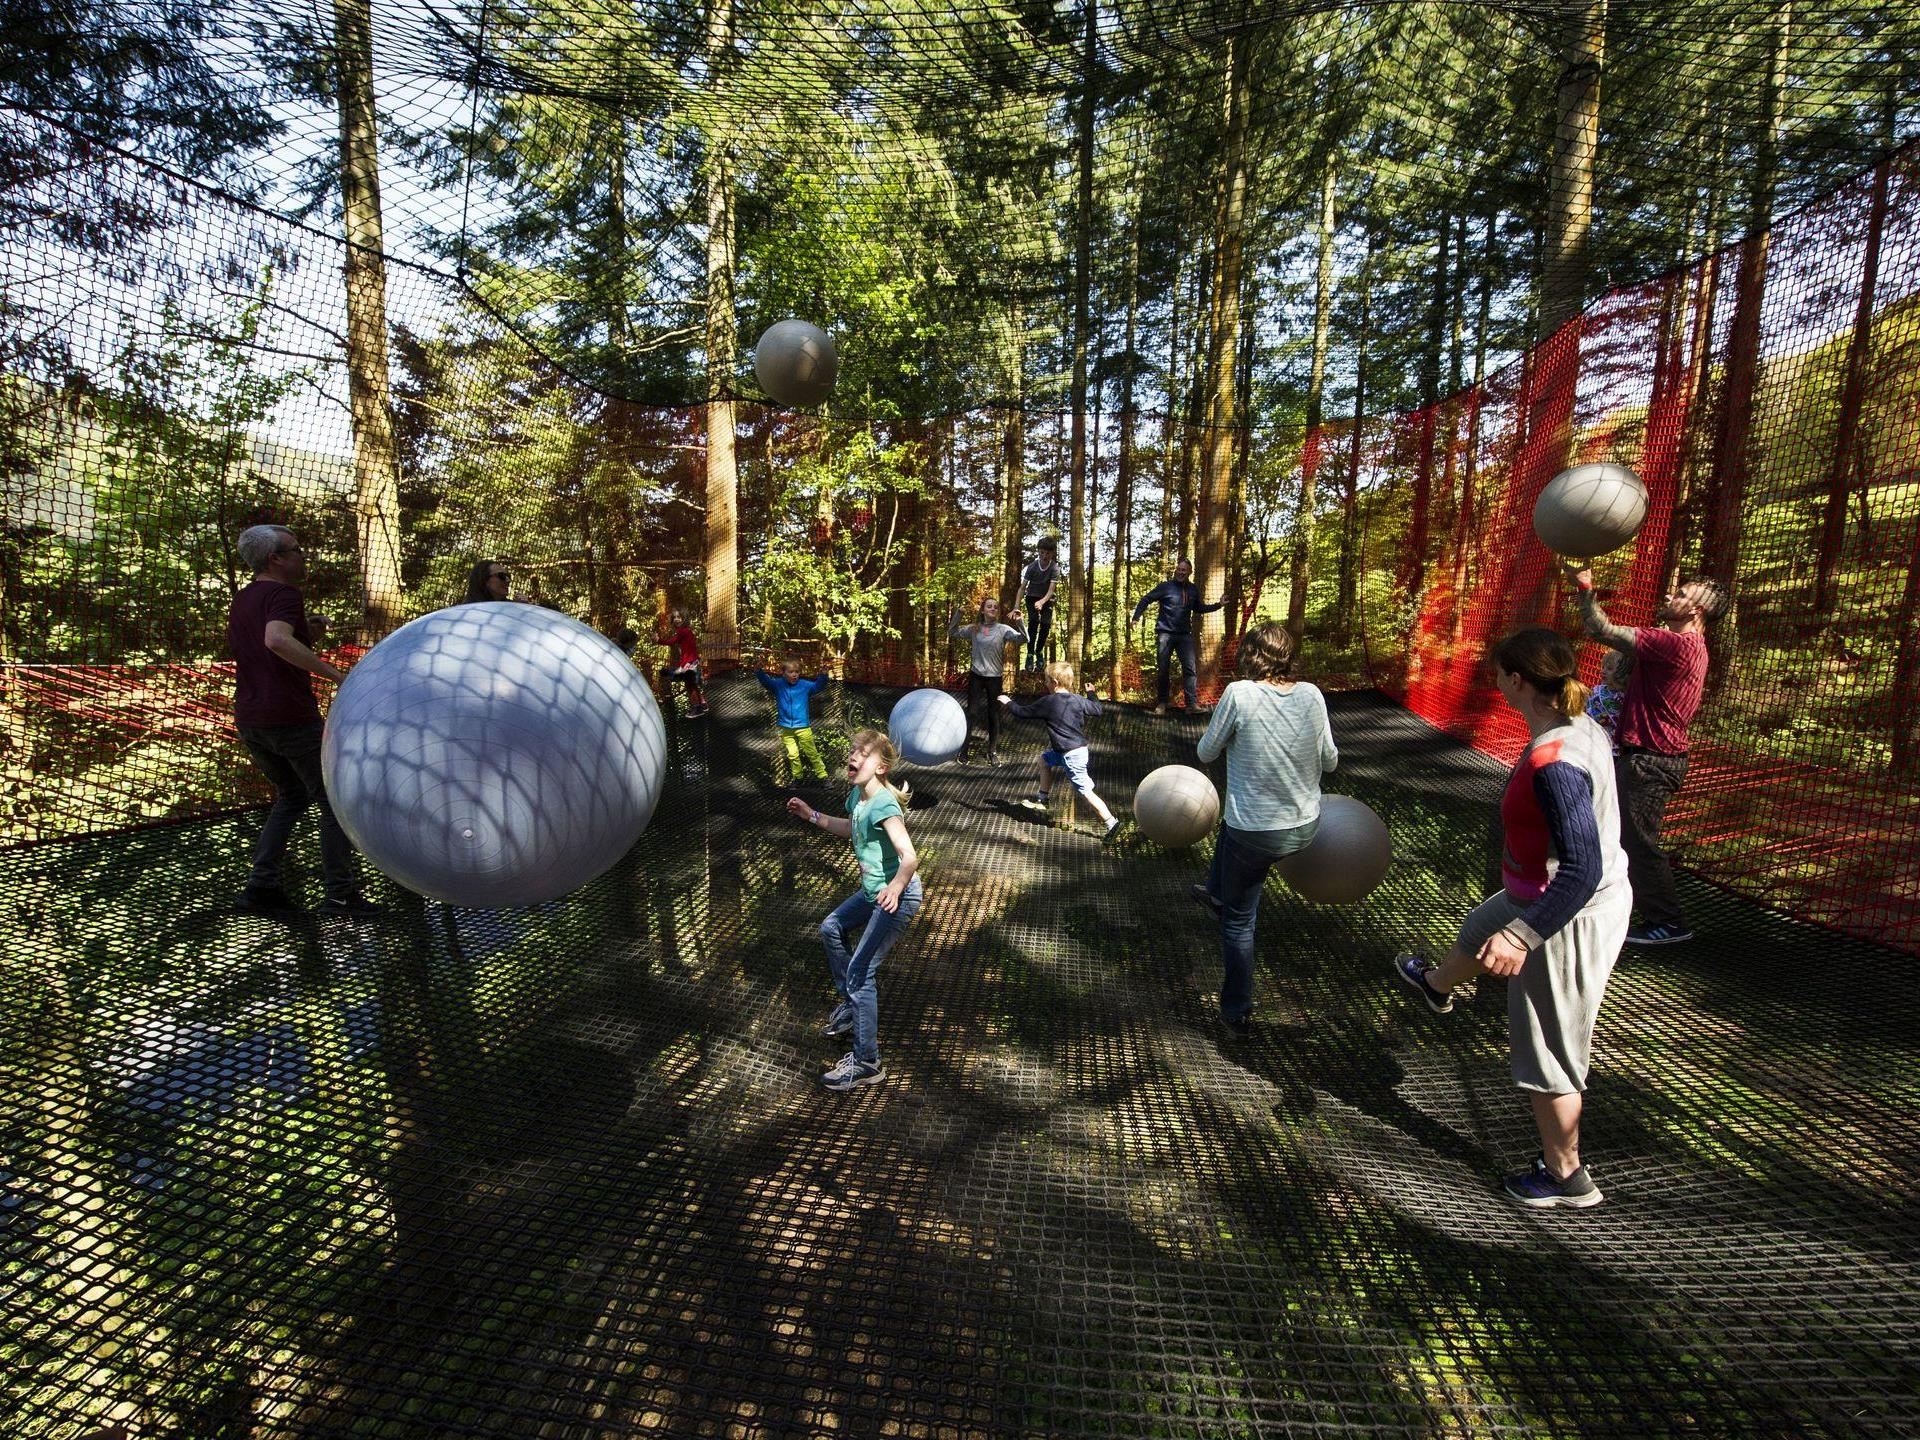 Hop, bounce and slide on Treetop Nets